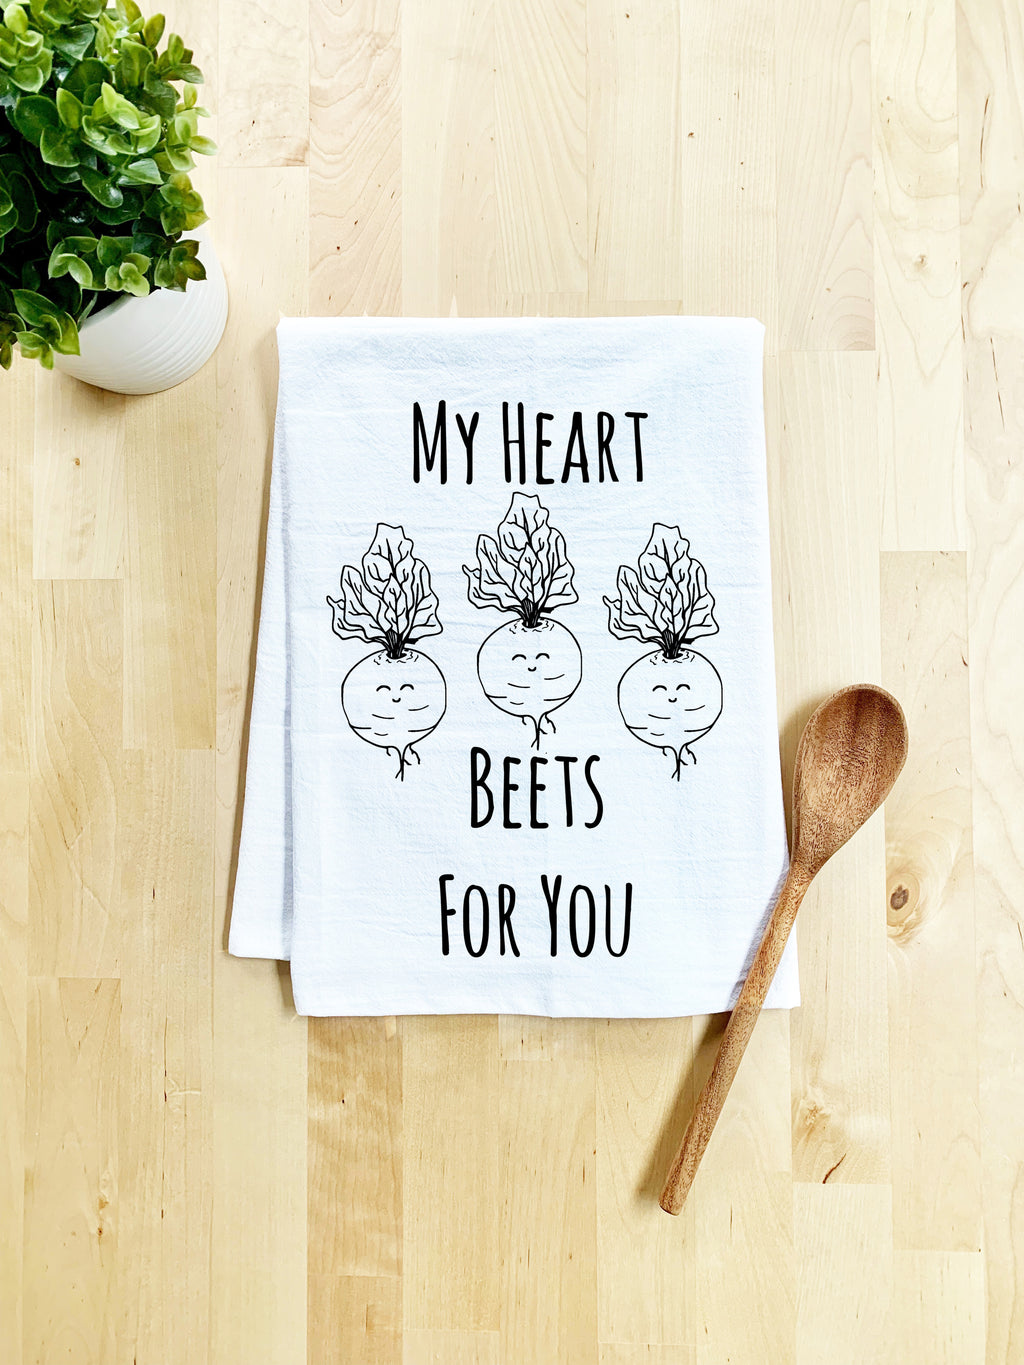 My Heart Beets for You